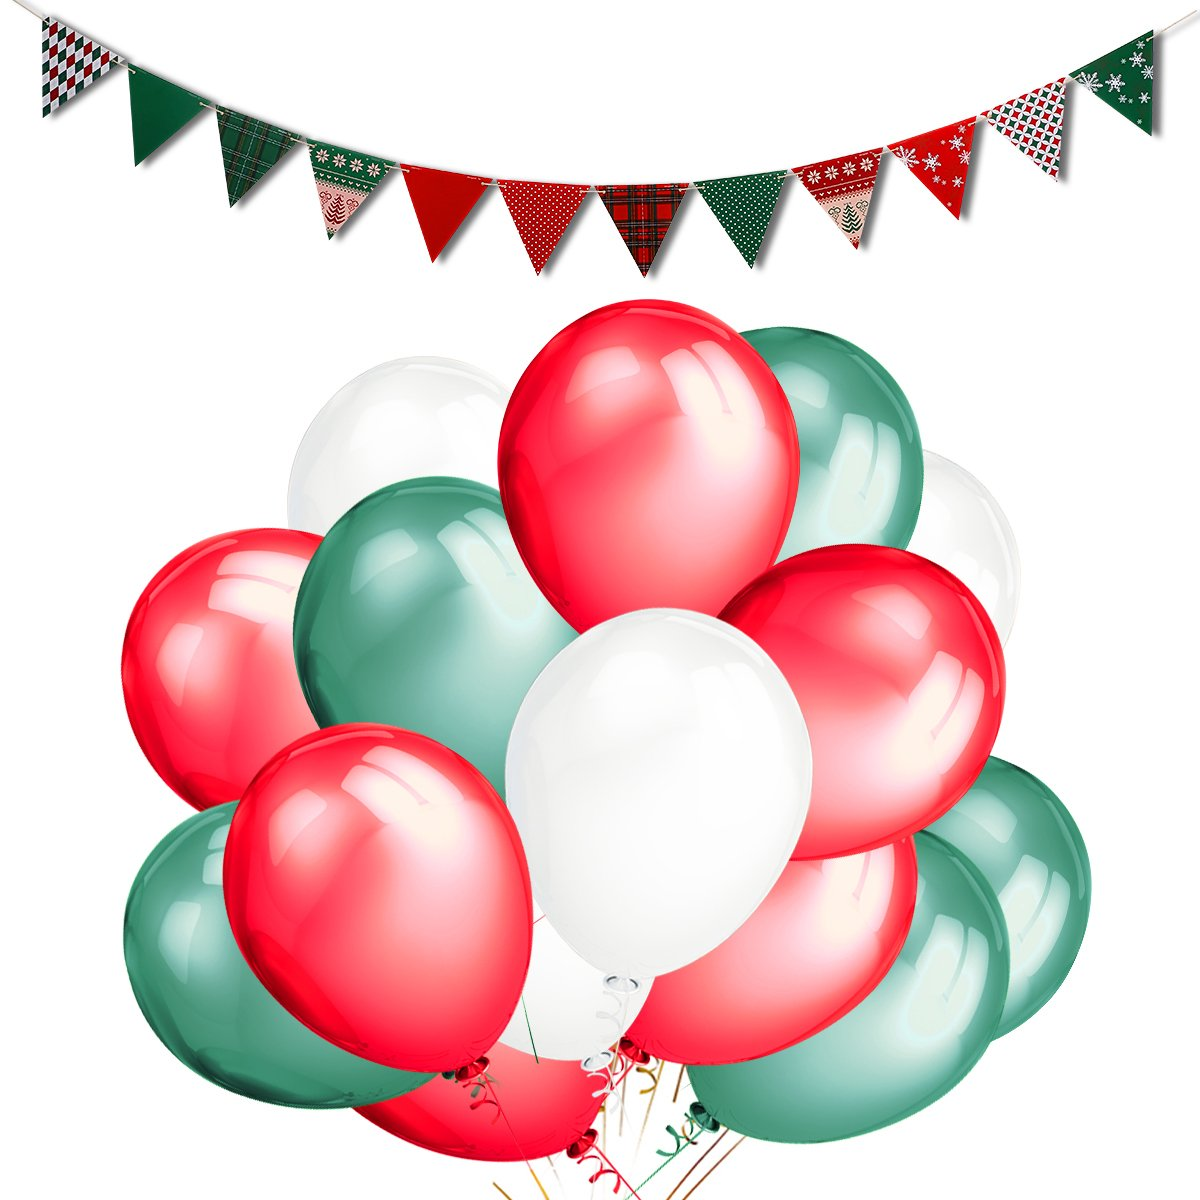 LeeSky 50Pack Red & Green & White Color Party Balloons and Christmas Style Pennant Banner- Christmas Party Decoration Supplies GRW-12